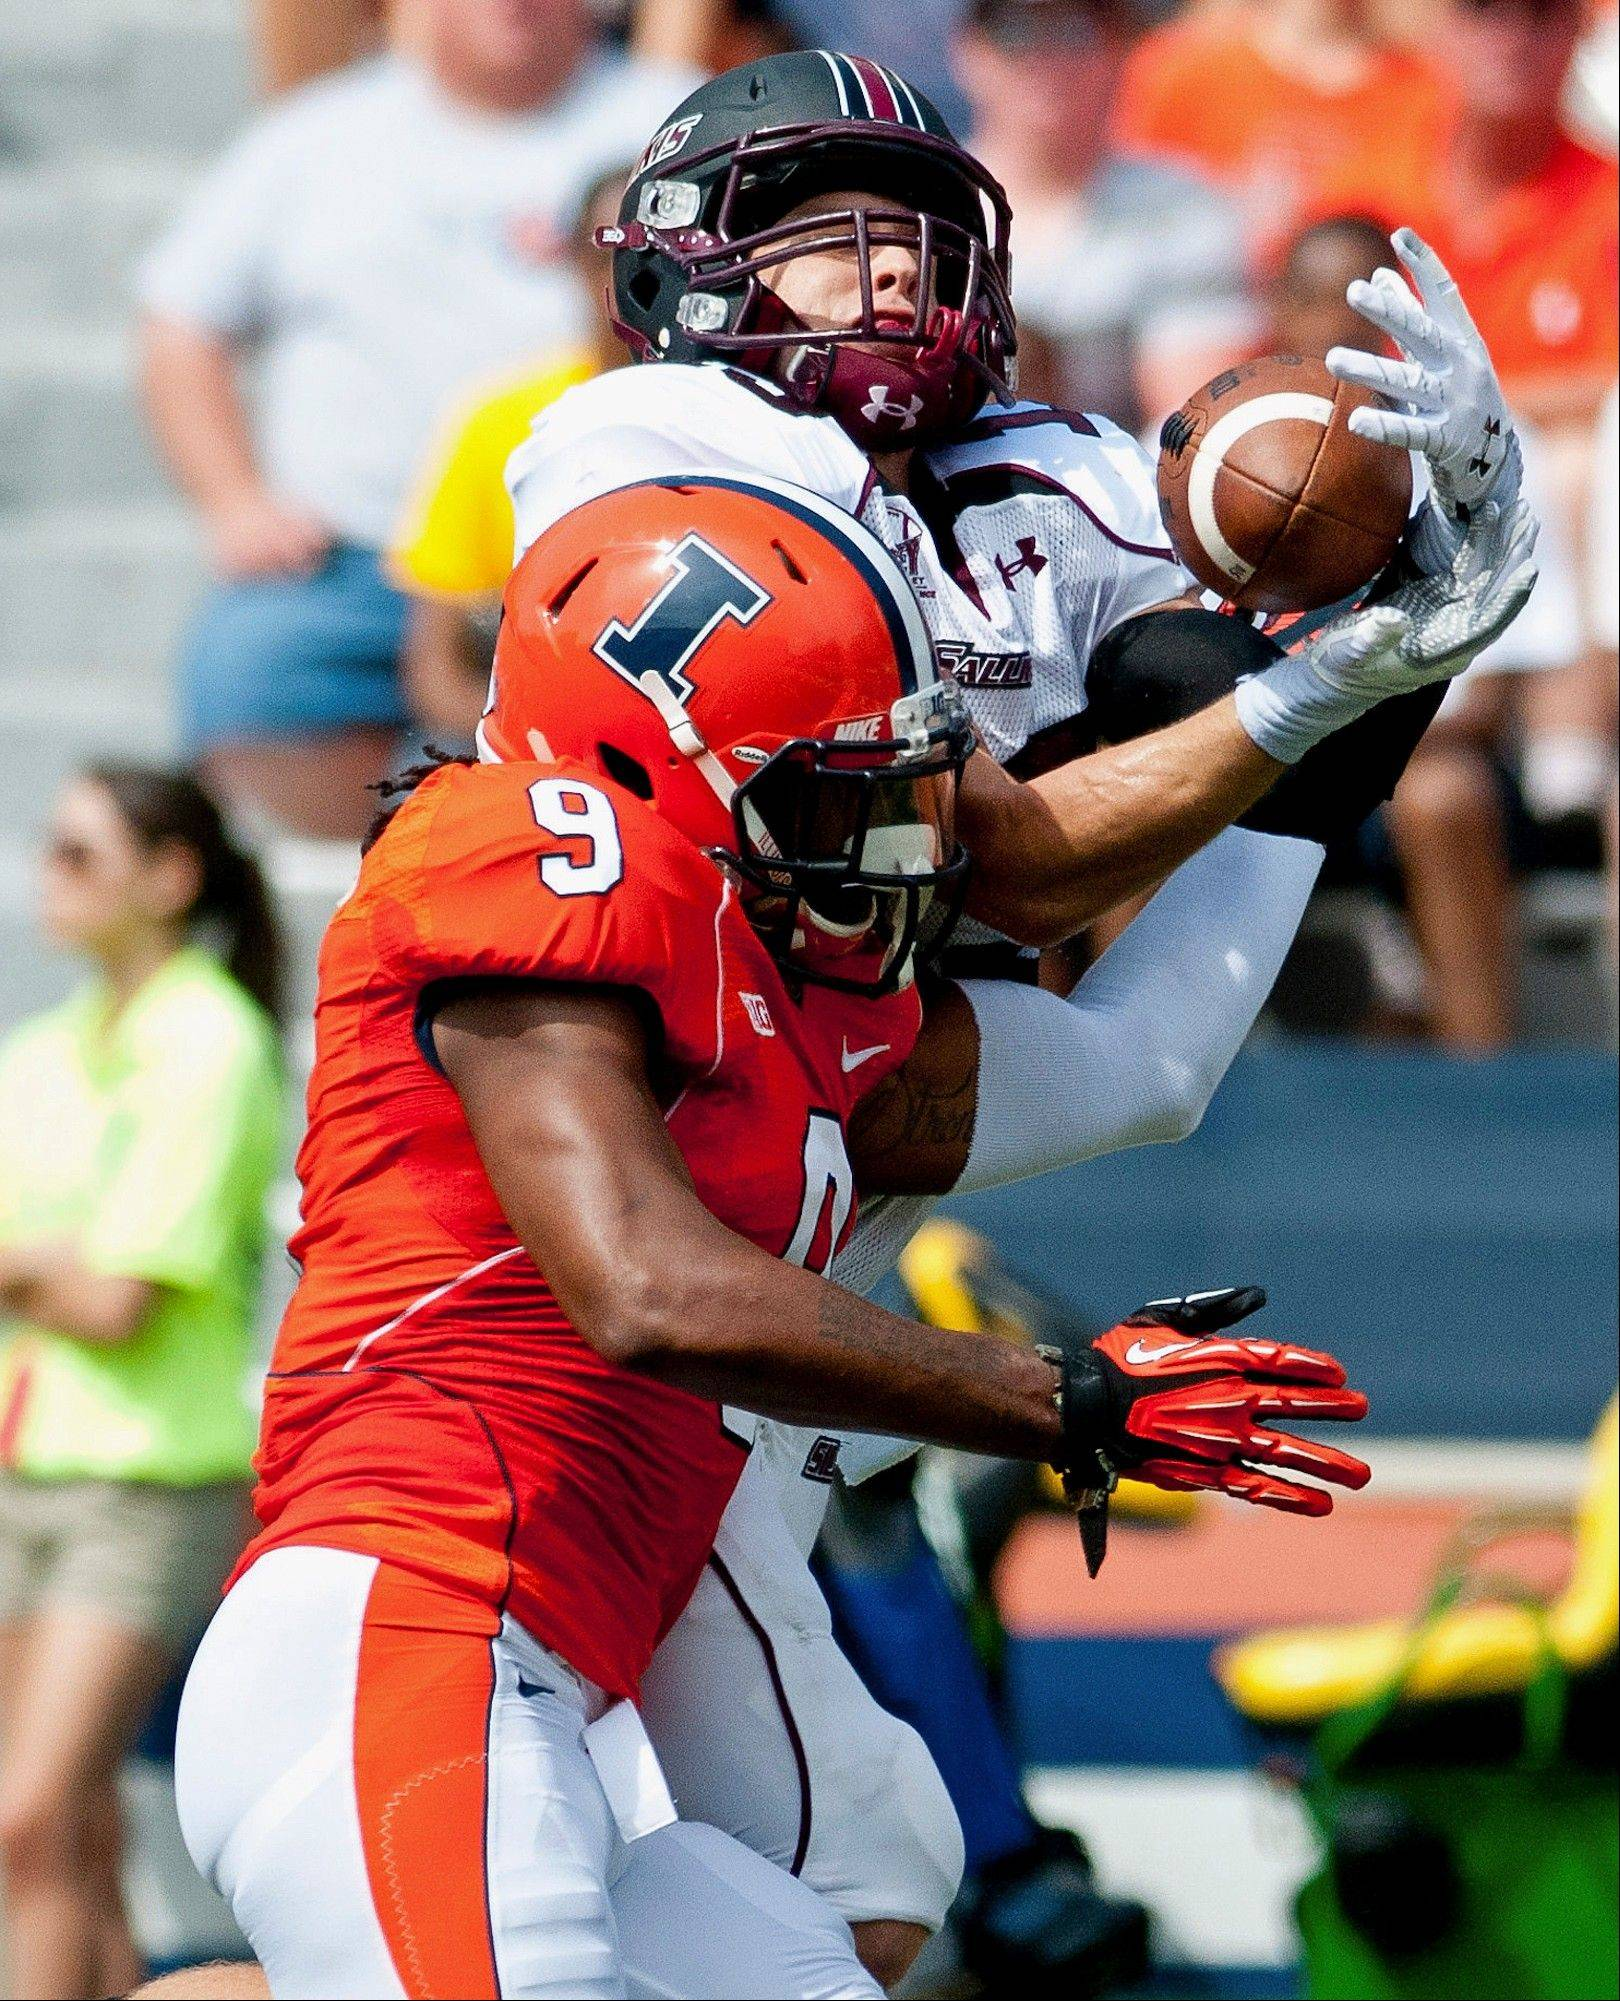 Southern Illinois wide receiver John Lantz makes a catch behind Illinois defensive back Earnest Thomas last Saturday in Champaign. Illinois� defense was a liability in the season opener against SIU.